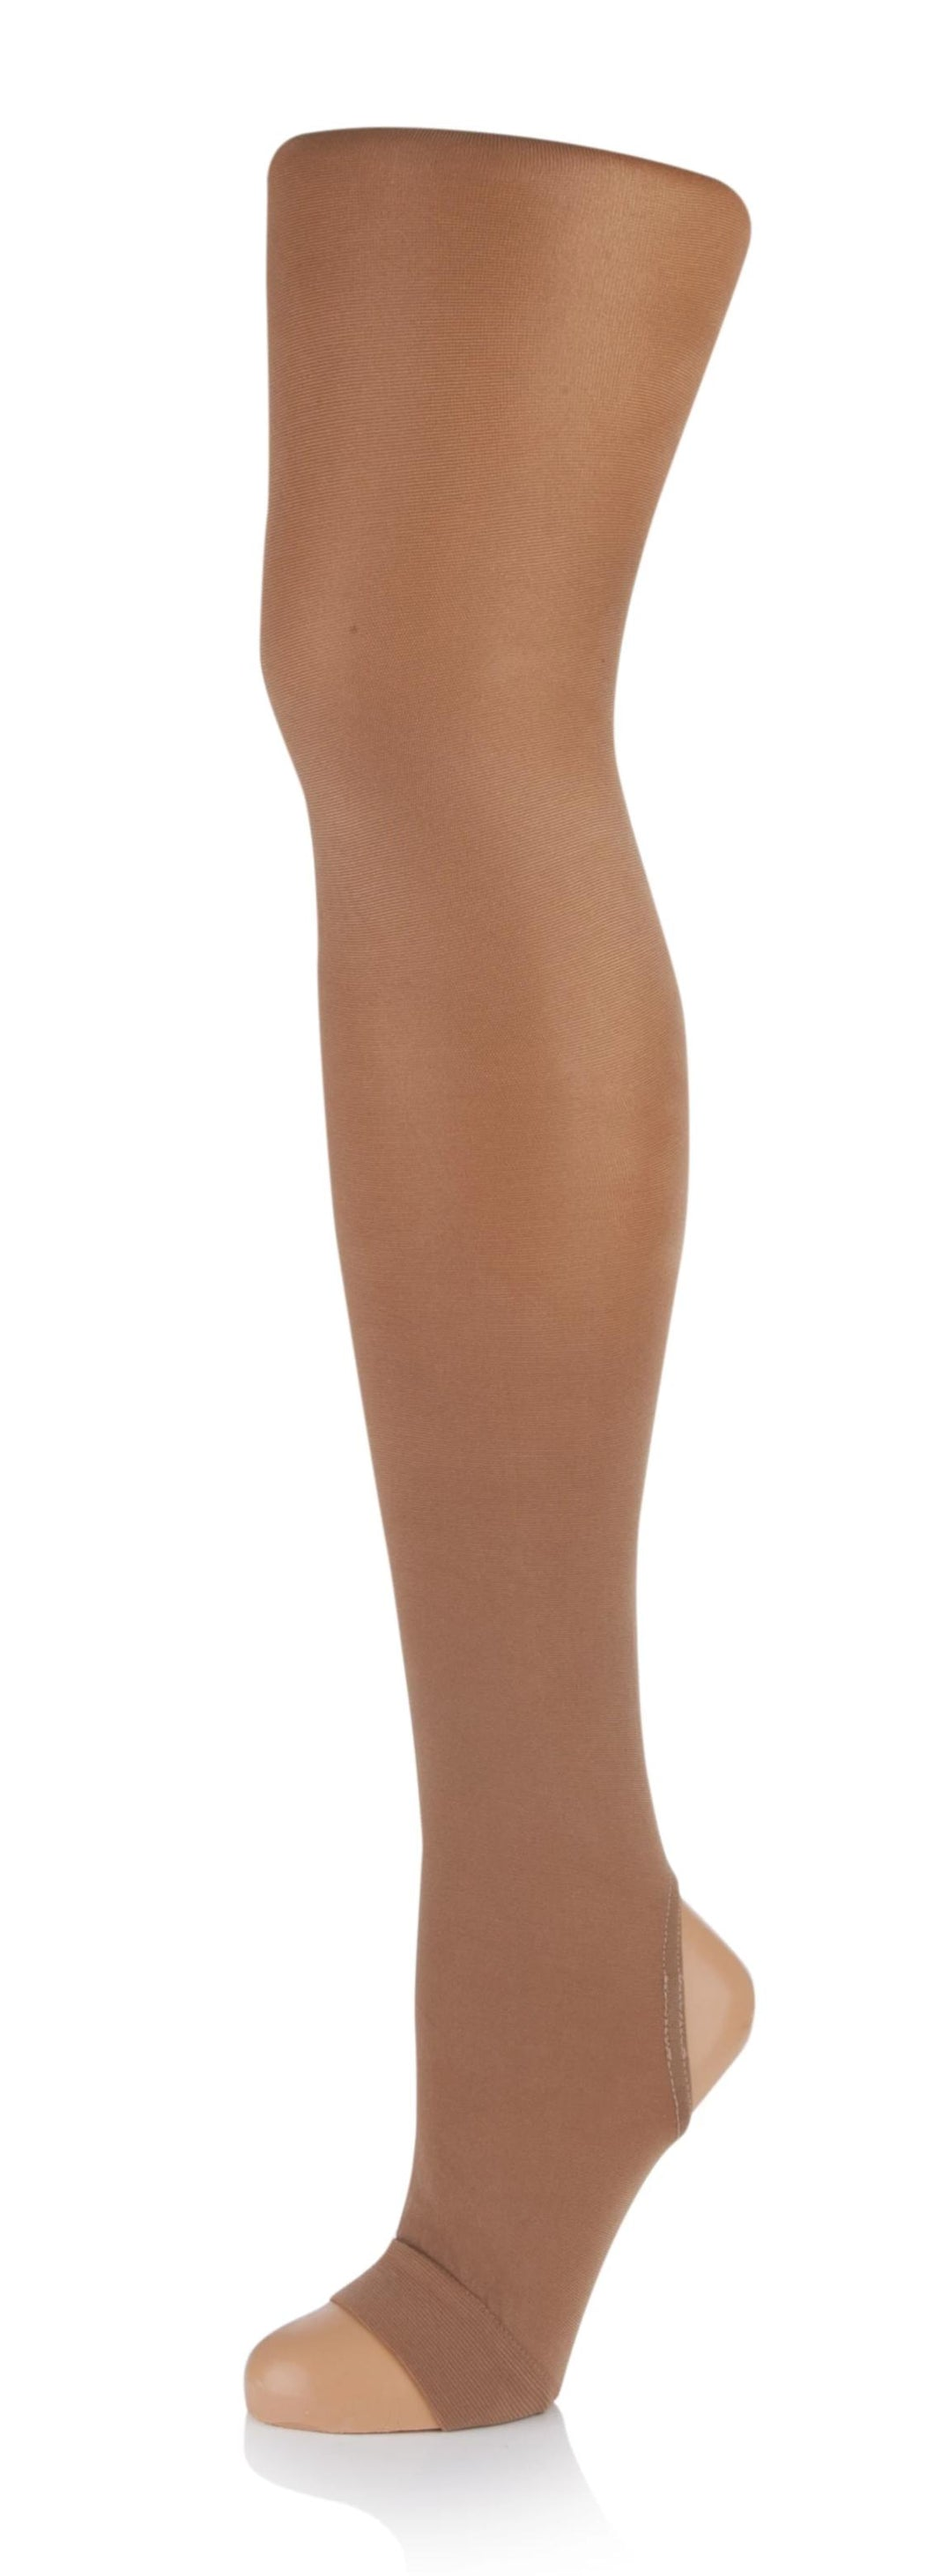 Freed Ultra Sheen Stirrup Foot Shimmer Tights